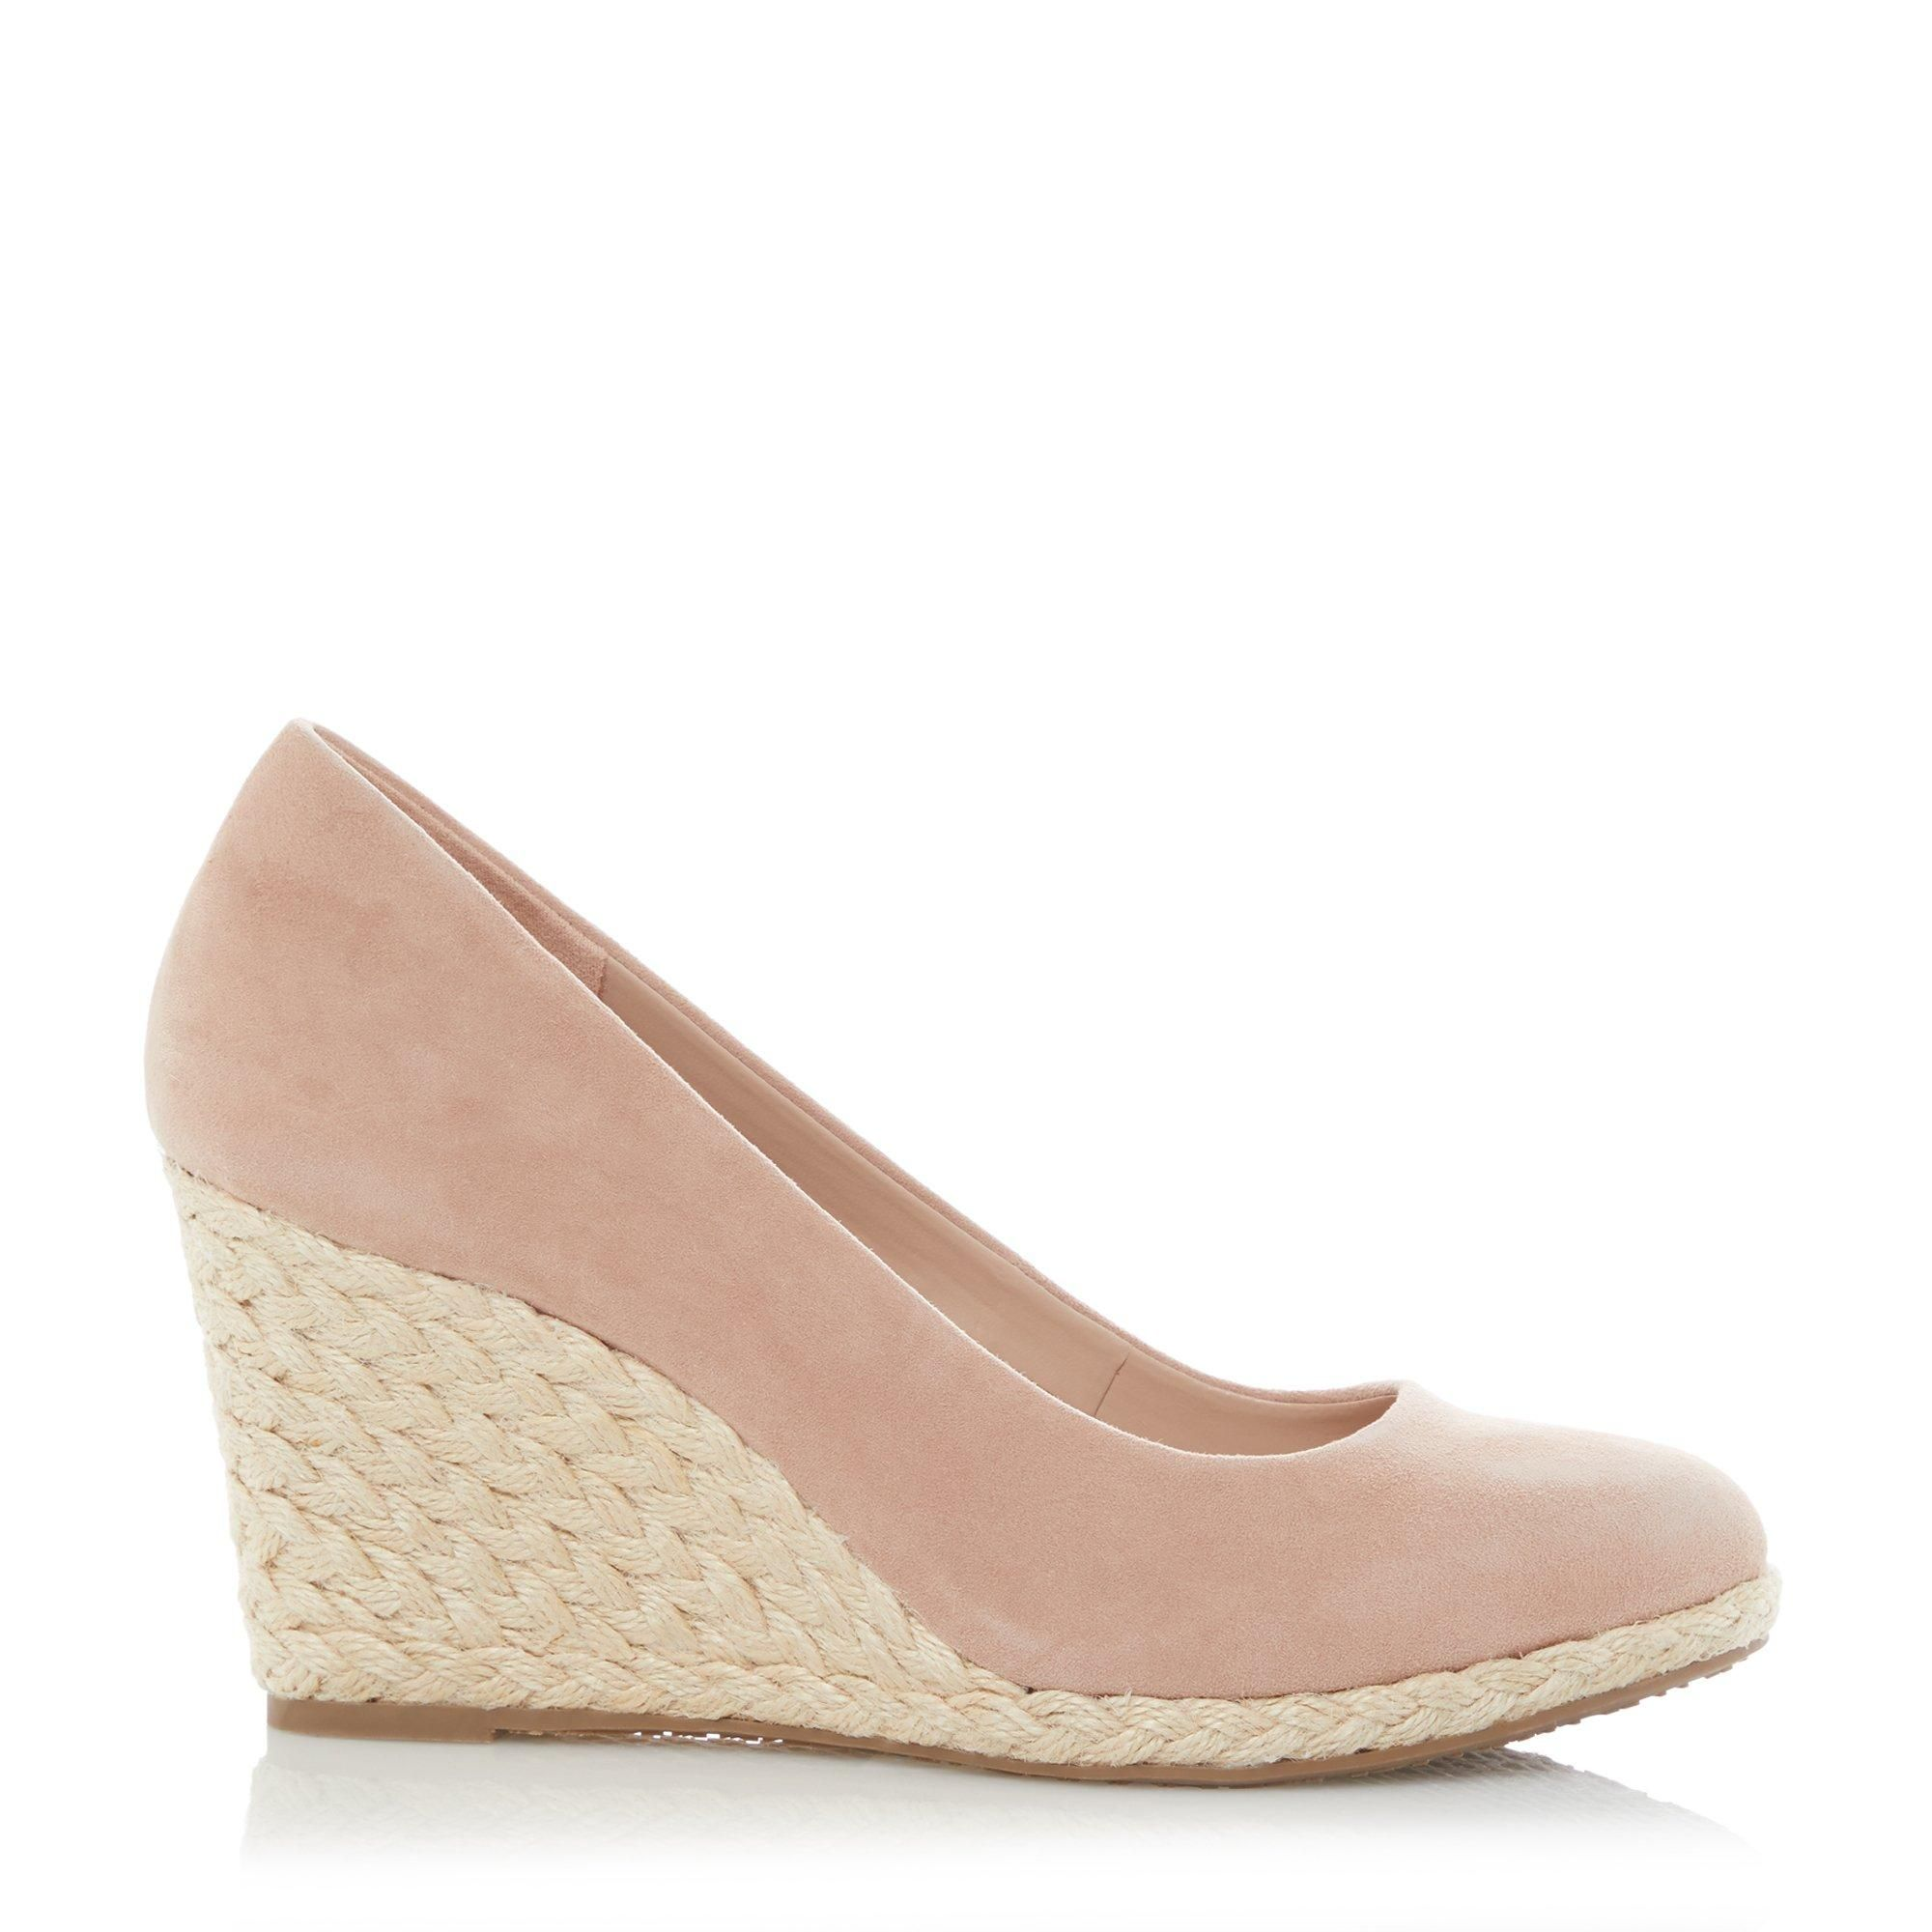 Dune Ladies ANNABELS Wedge Heel Espadrille Shoes